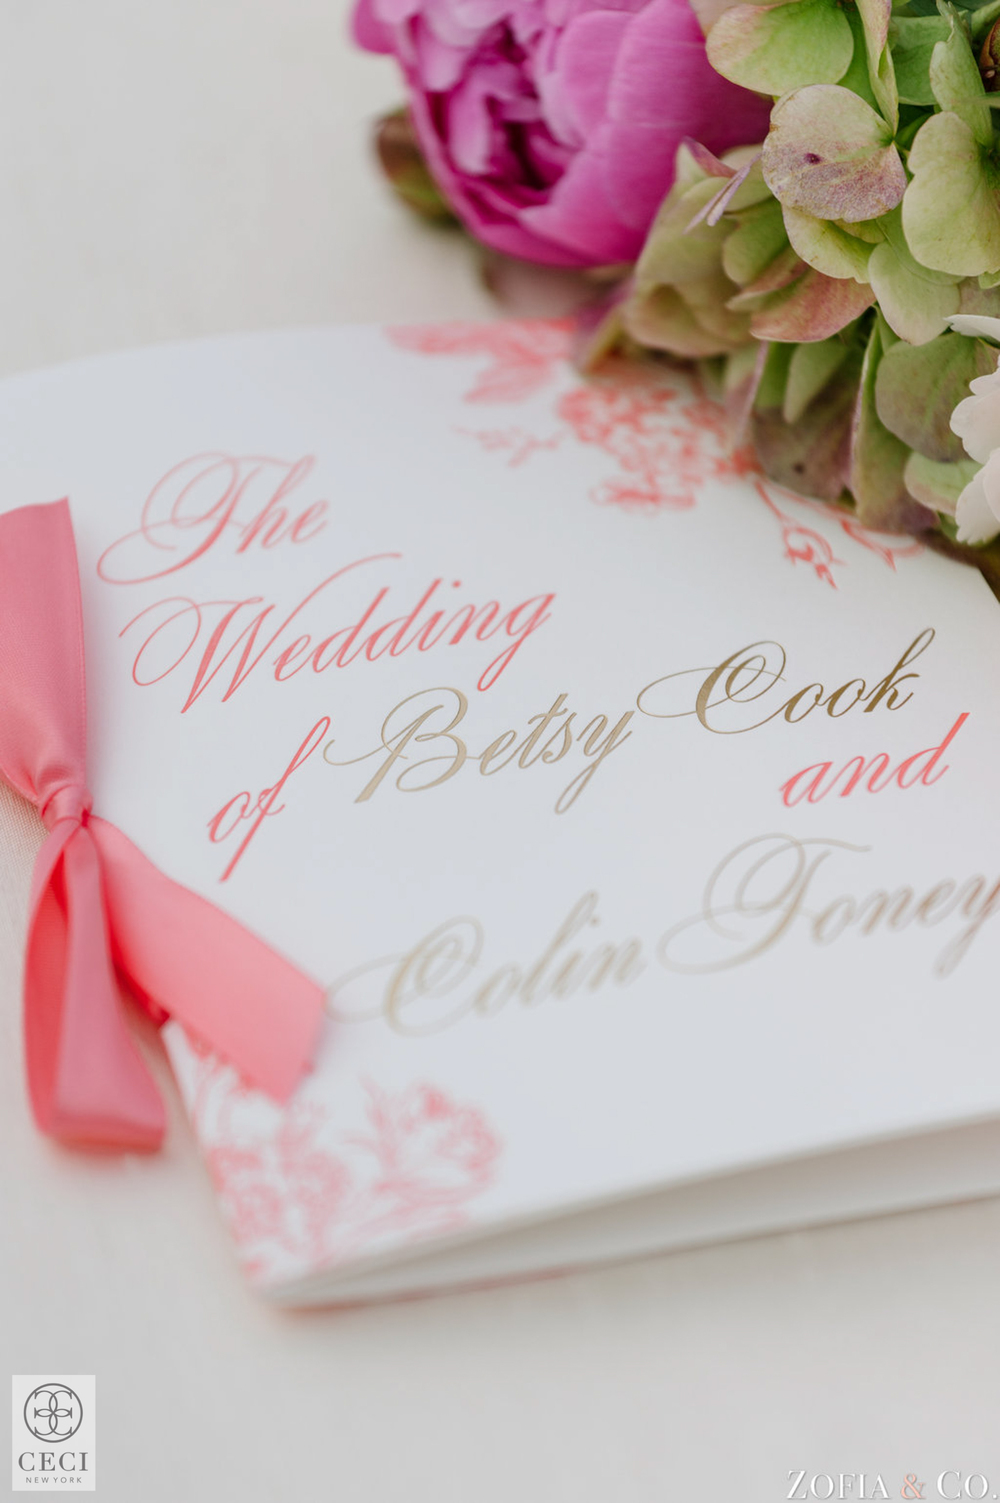 Ceci_New_York_Custom_Luxury_Wedding_LaserCut_Stationery_Personalized_Couture_Foil_Stamping_Black_Chic_-2.jpg